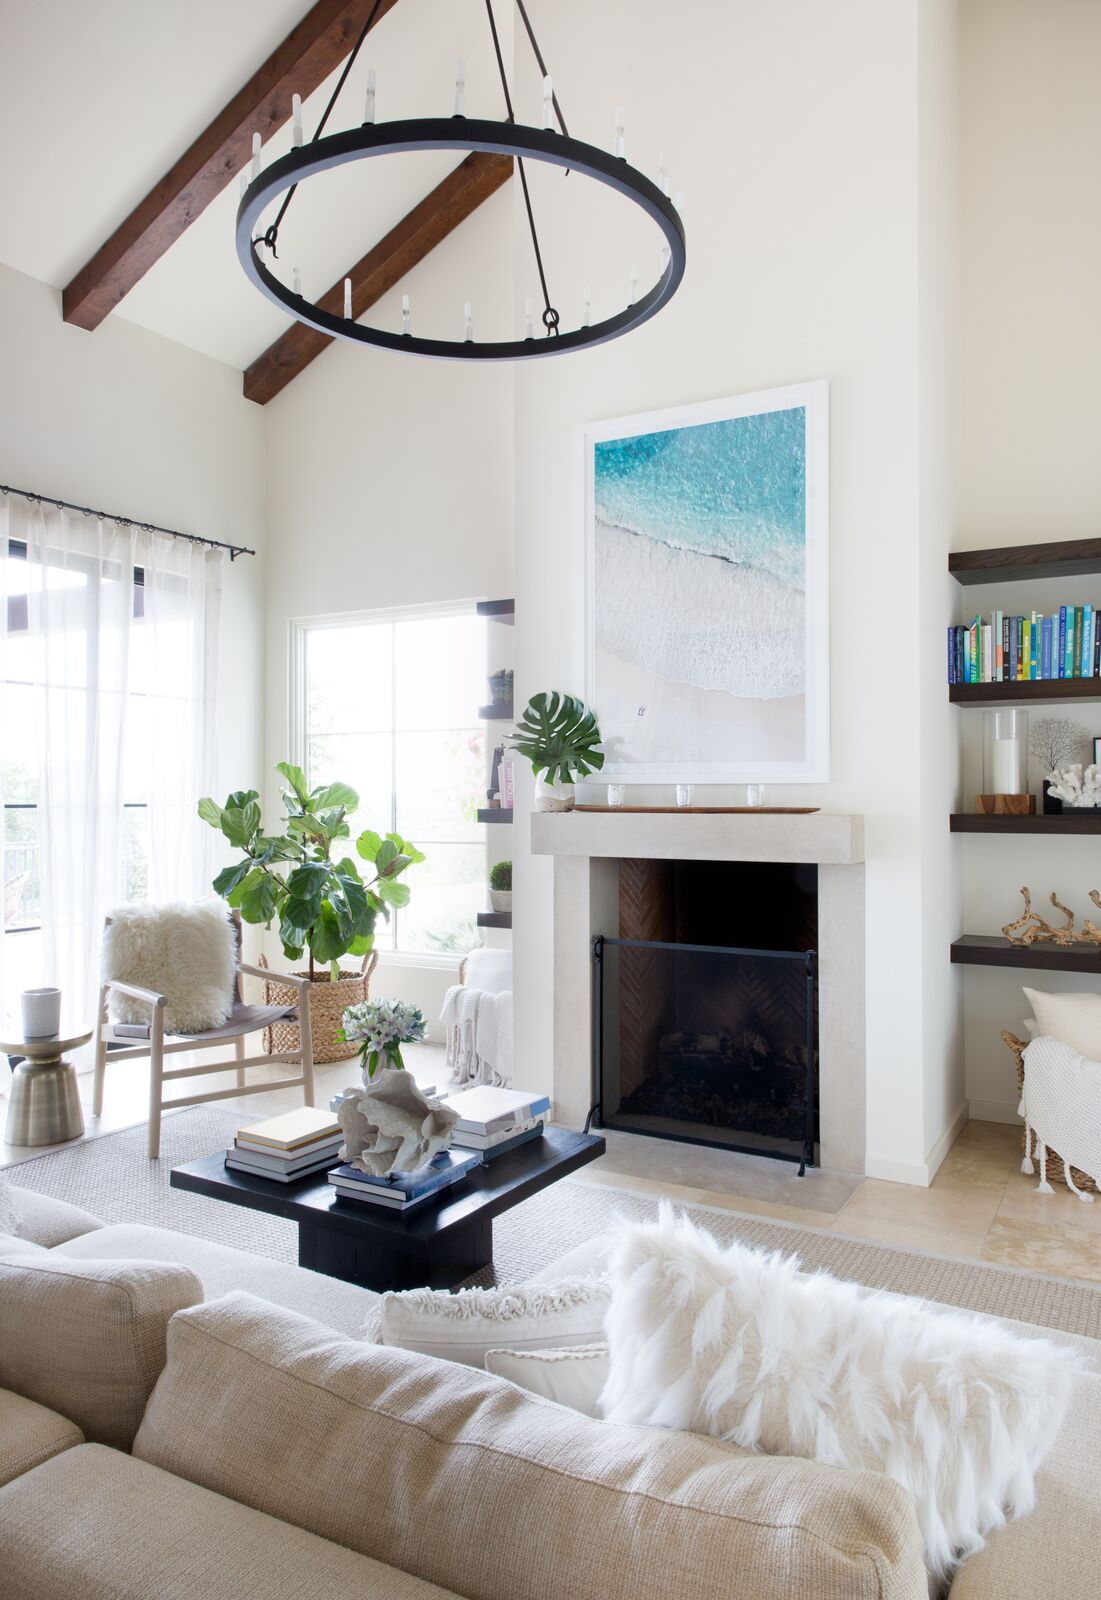 21 Easy And Unexpected Living Room Decorating Ideas